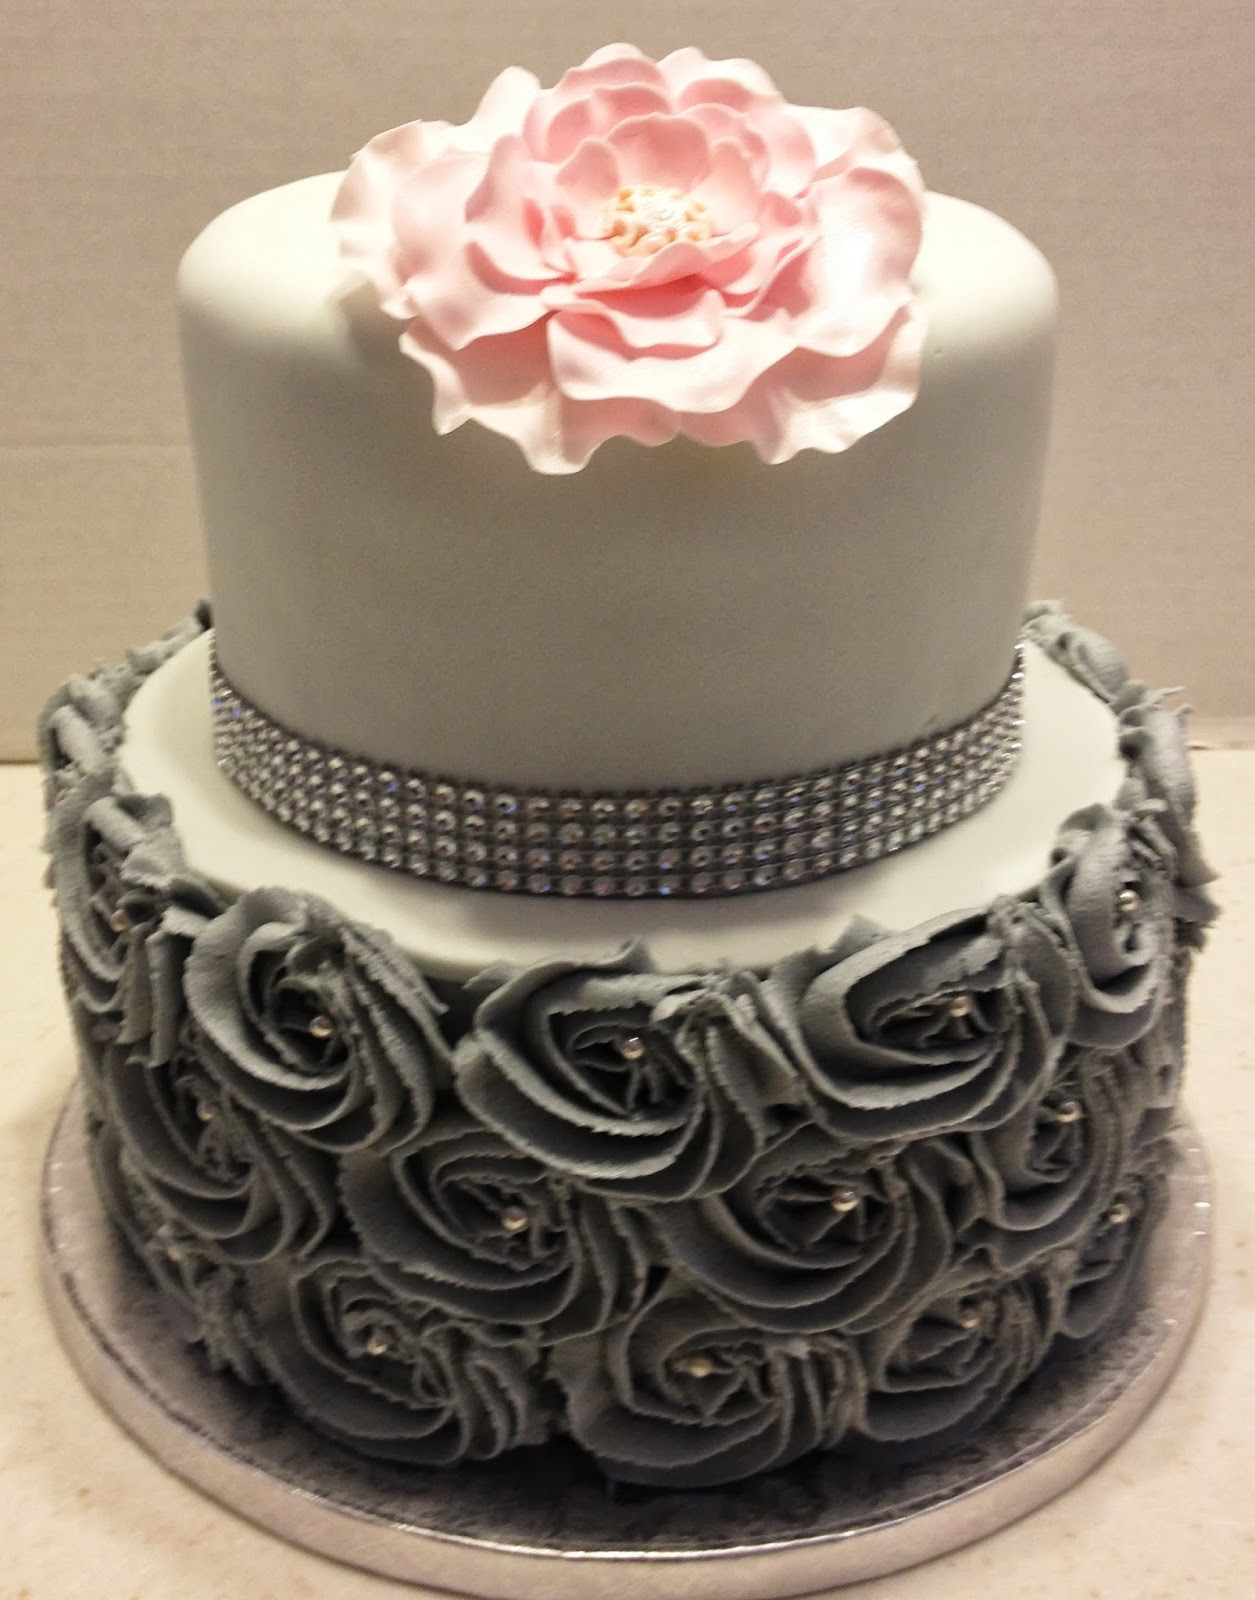 Best ideas about 60th Birthday Cake . Save or Pin MaryMel Cakes October 2013 Now.